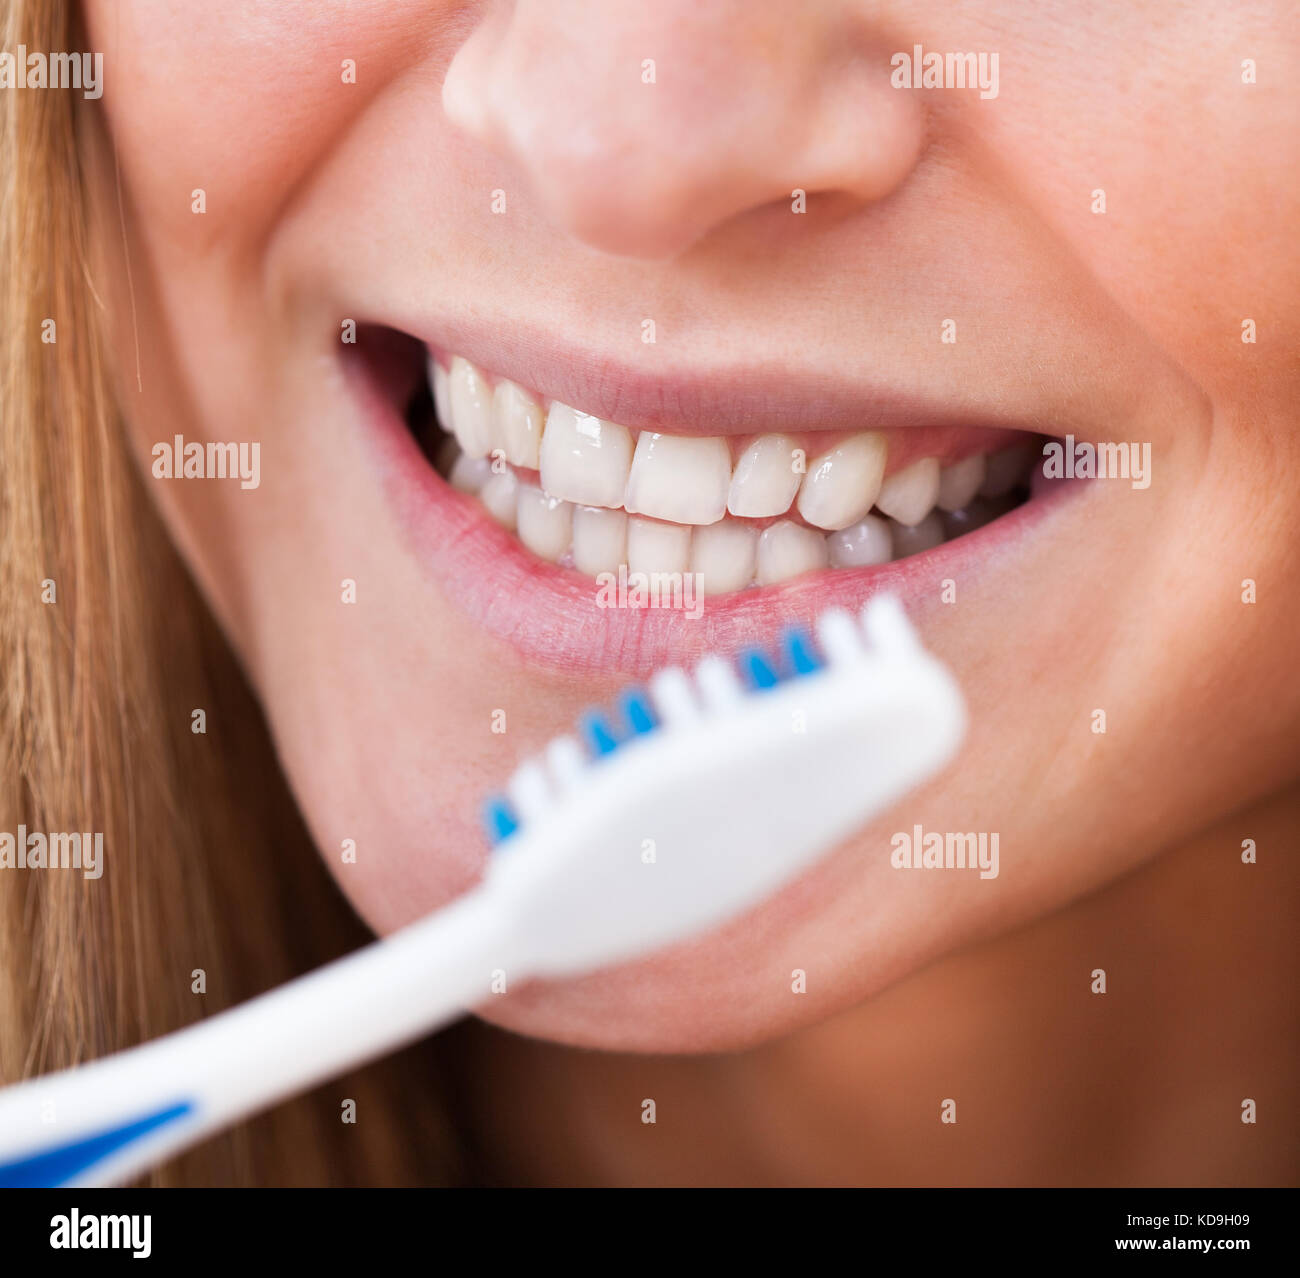 Close-up Of A Woman Brushing Her Teeth - Stock Image